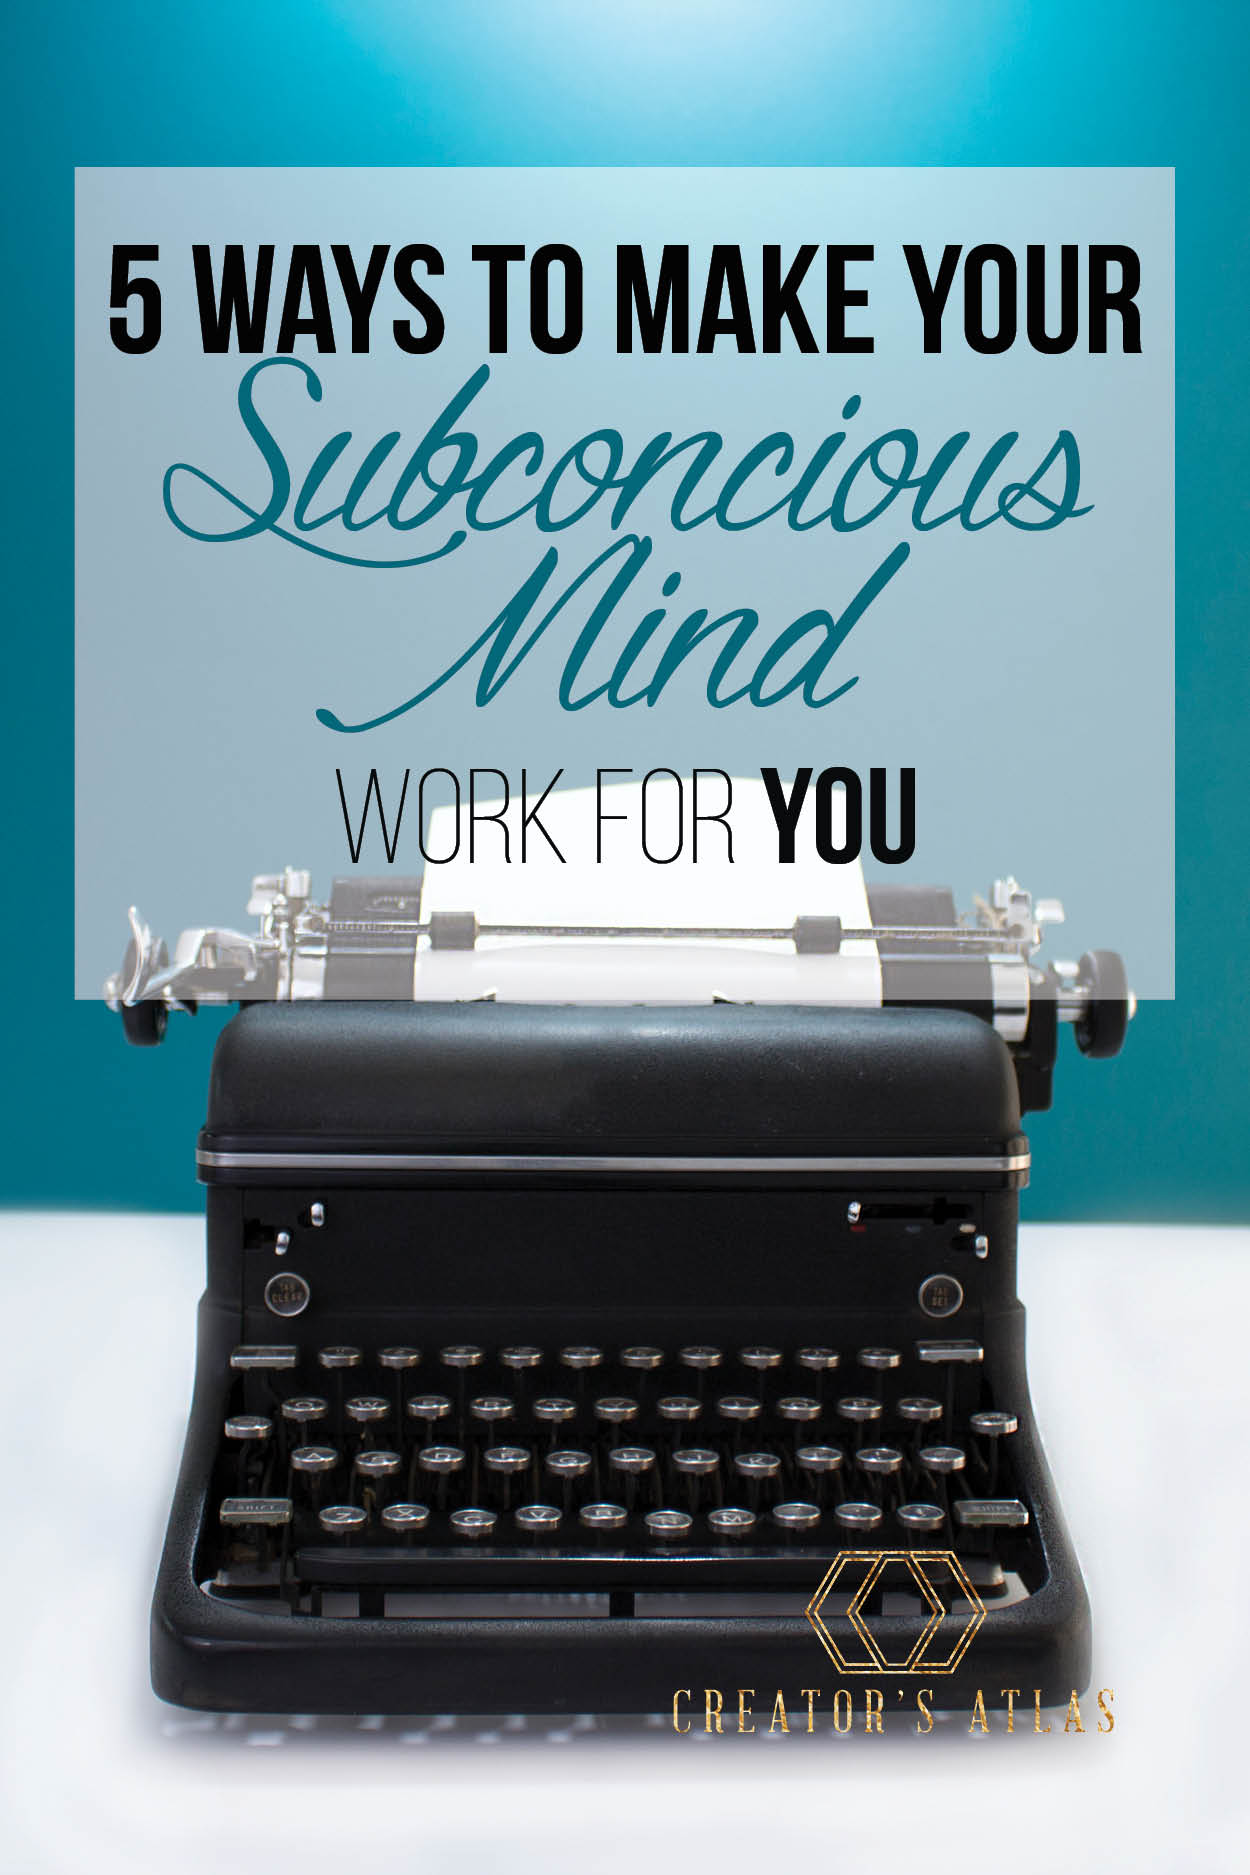 5 Ways to let make your subconscious work for you.